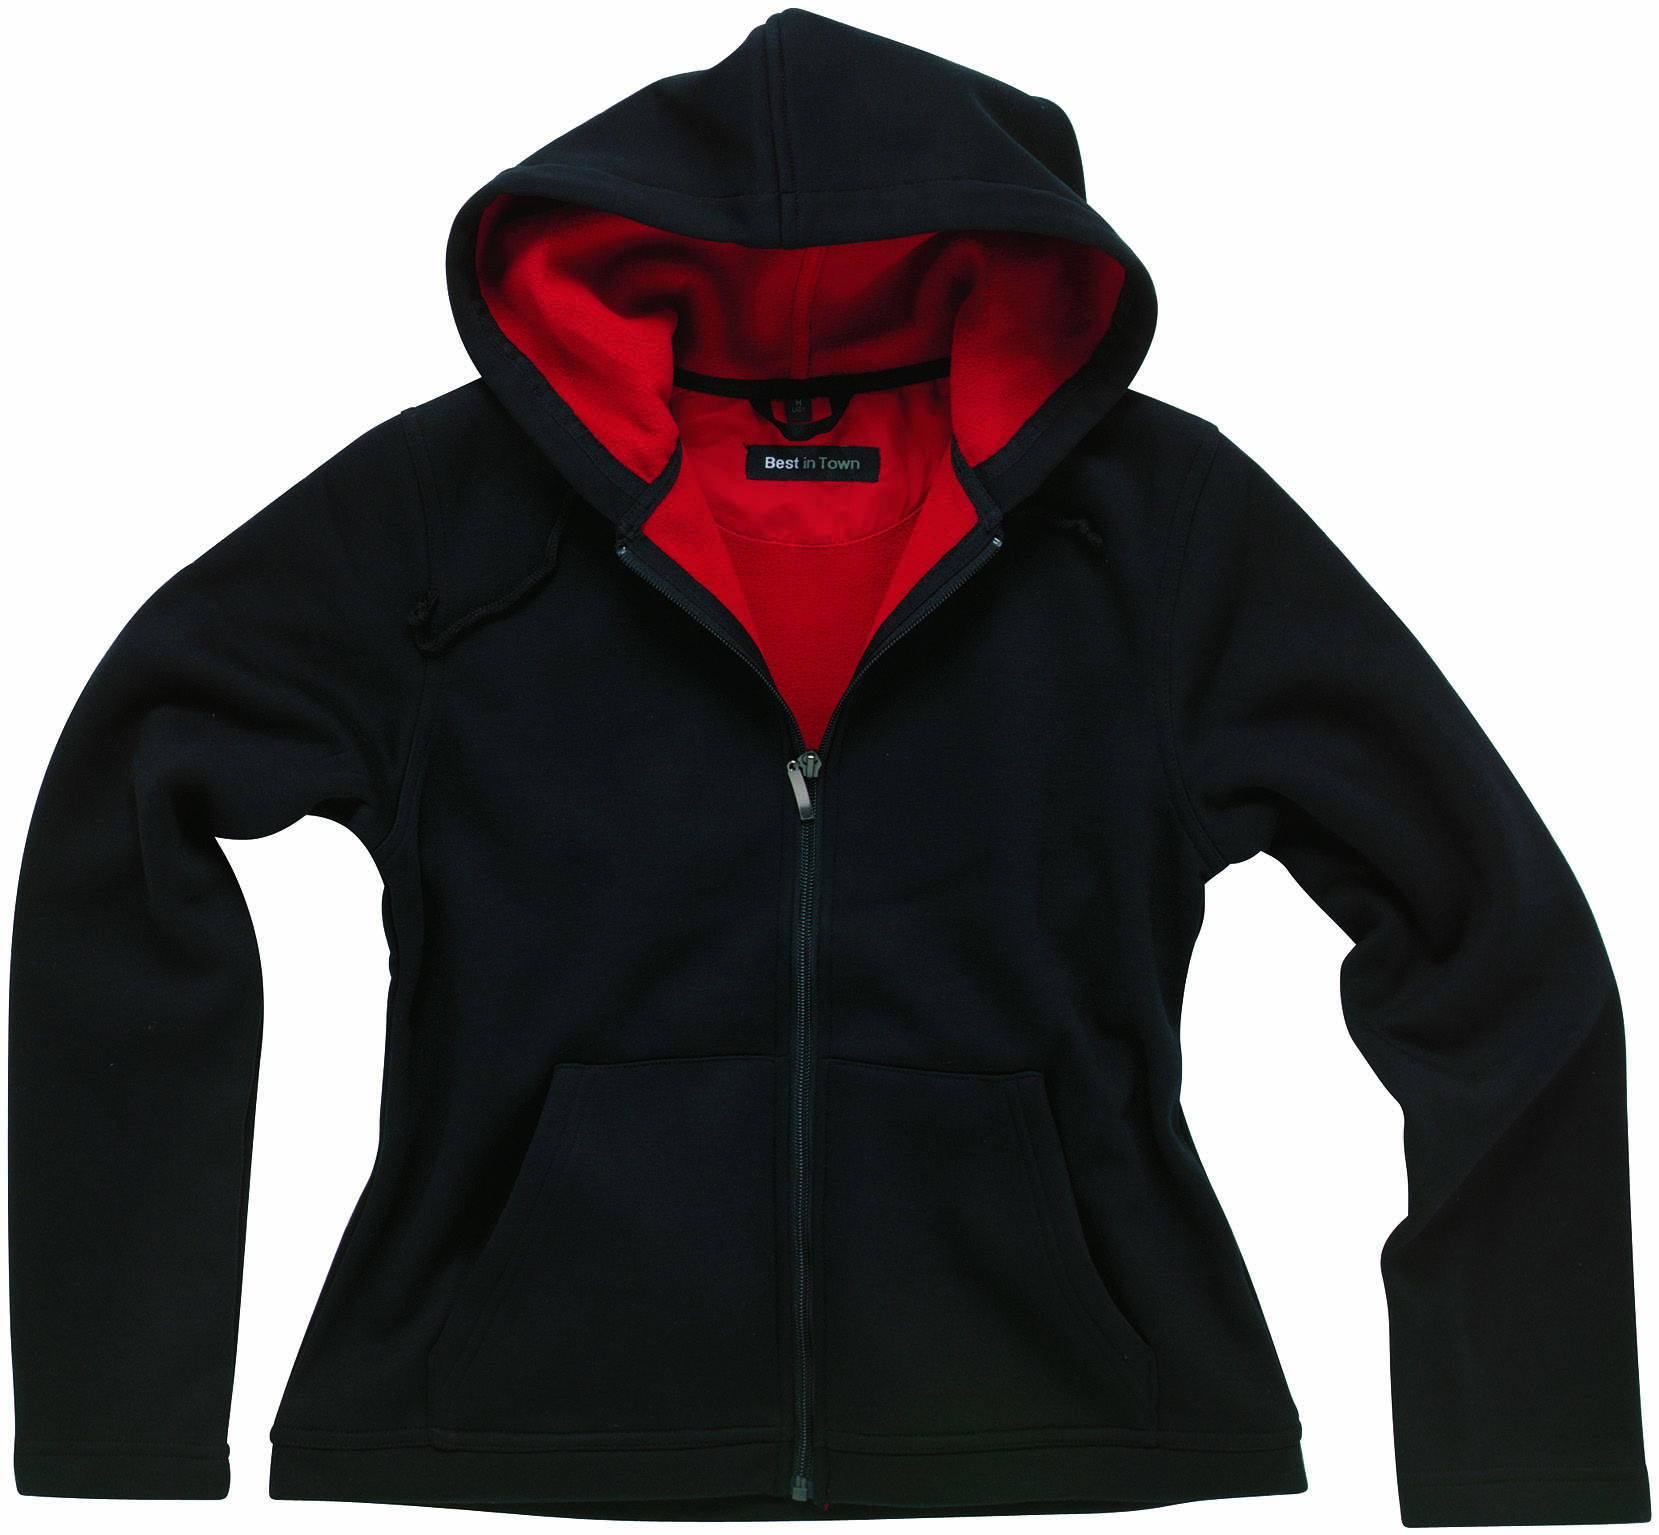 Hanorac Best In Town- Trainer Fleece Dama negru/rosu